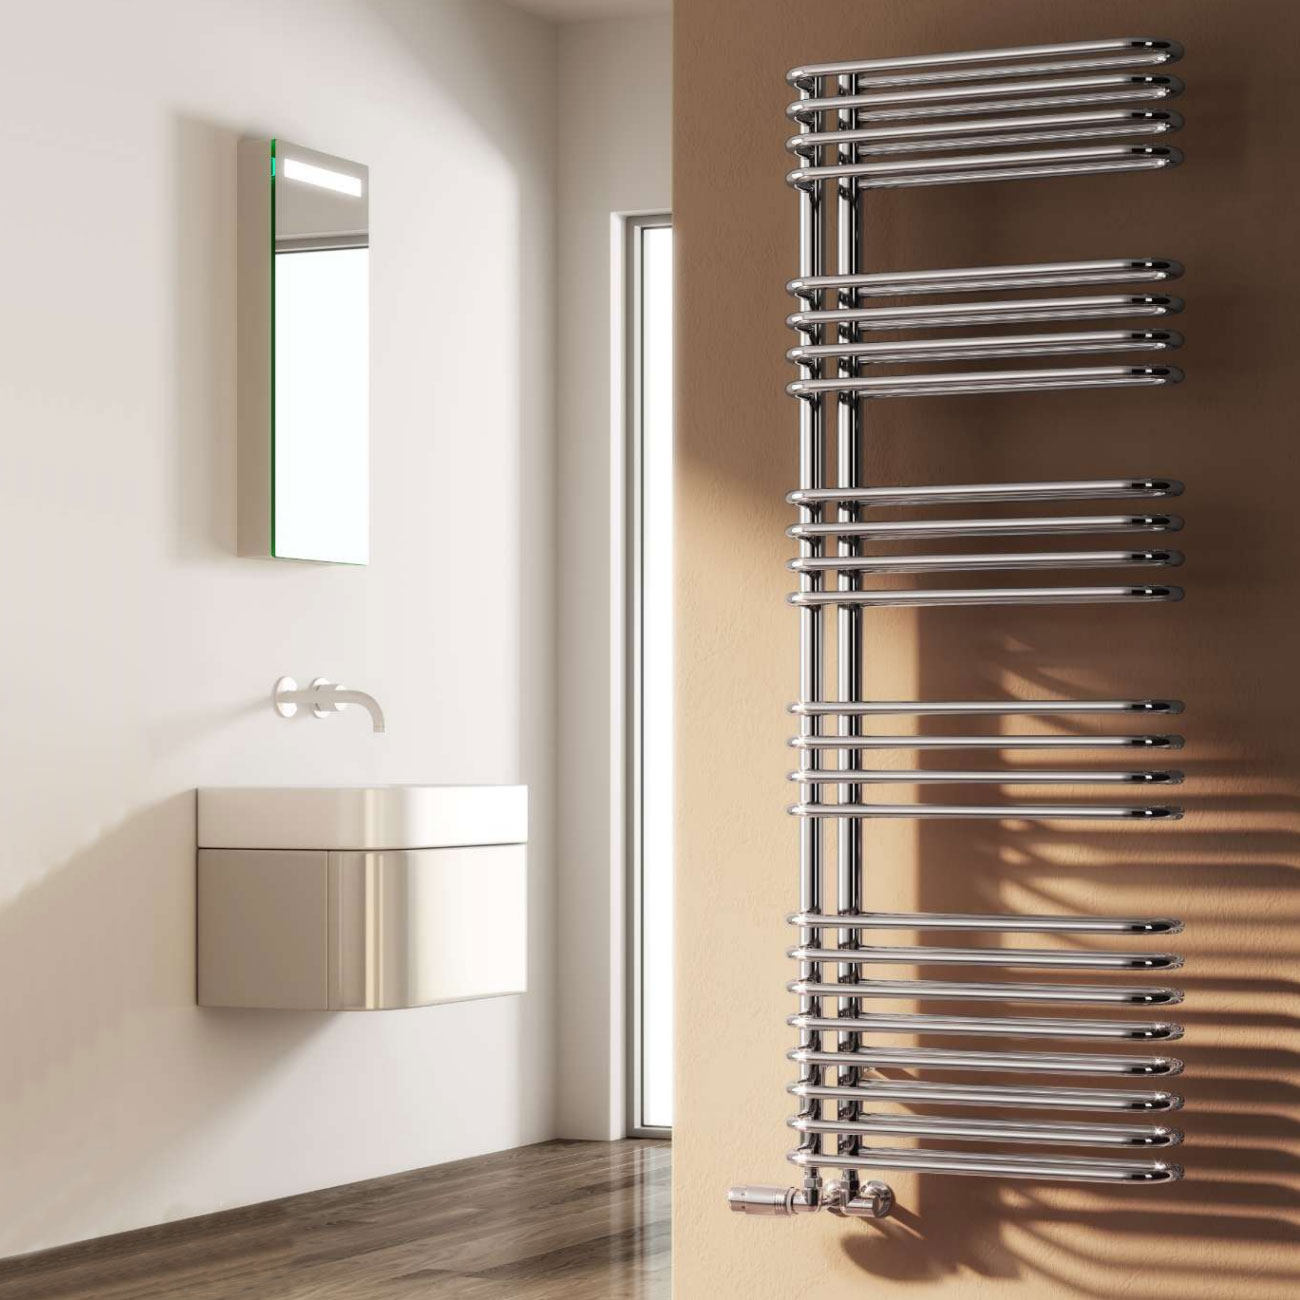 Reina Borgo Designer Heated Towel Rail 1300mm H x 500mm W Chrome-0